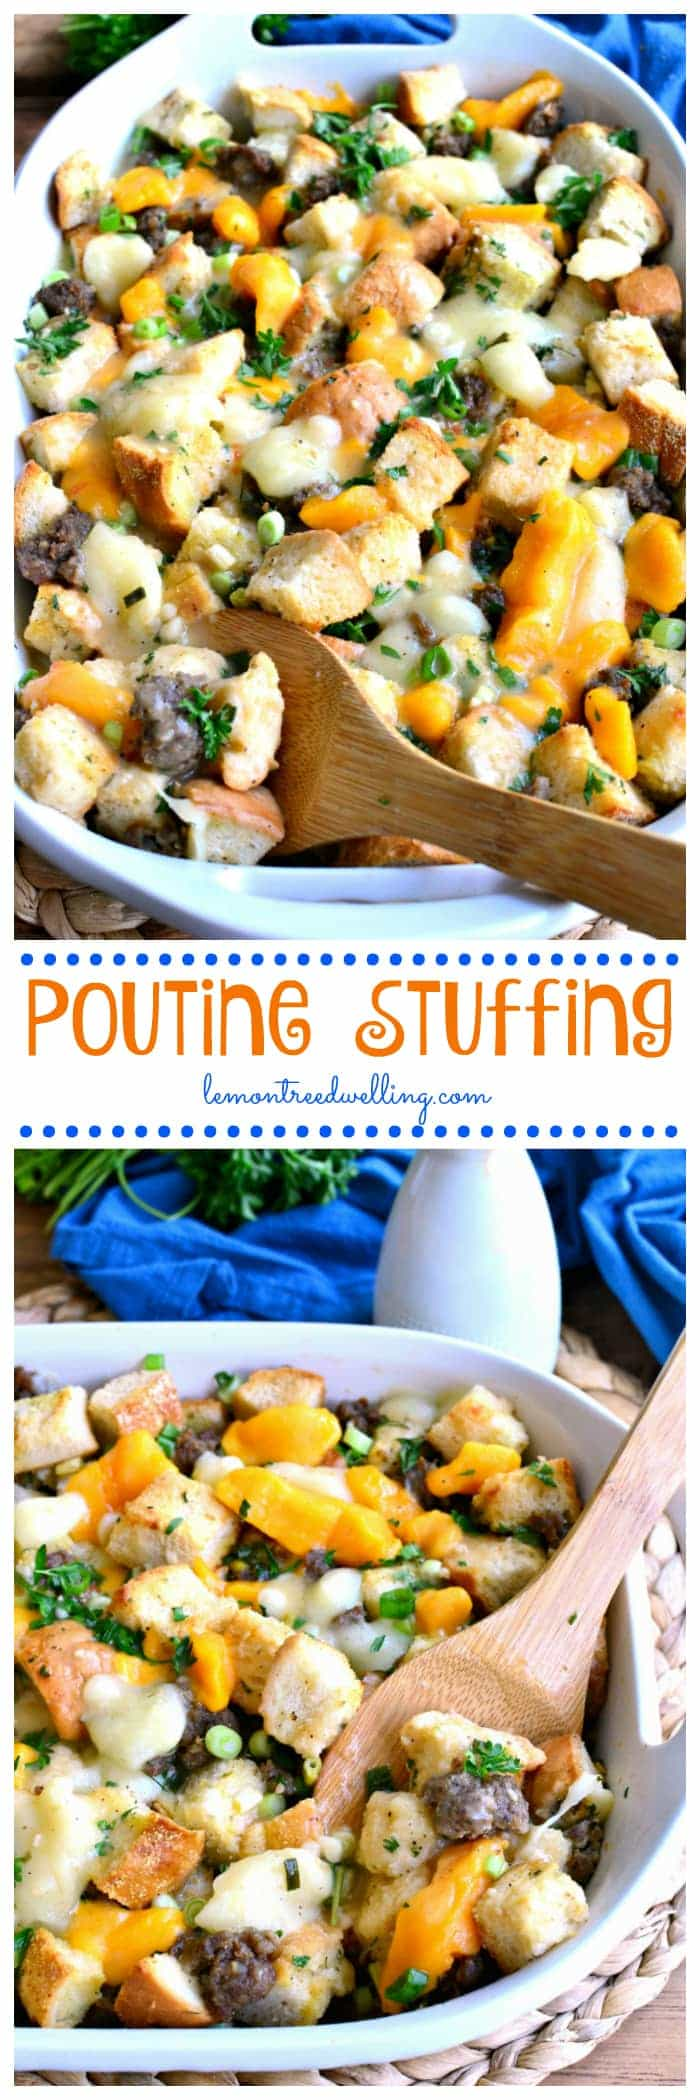 This Poutine Stuffing is packed full of pork sausage and cheese curds and topped with a delicious poutine gravy. It's such a fun twist on a classic - perfect for Thanksgiving!